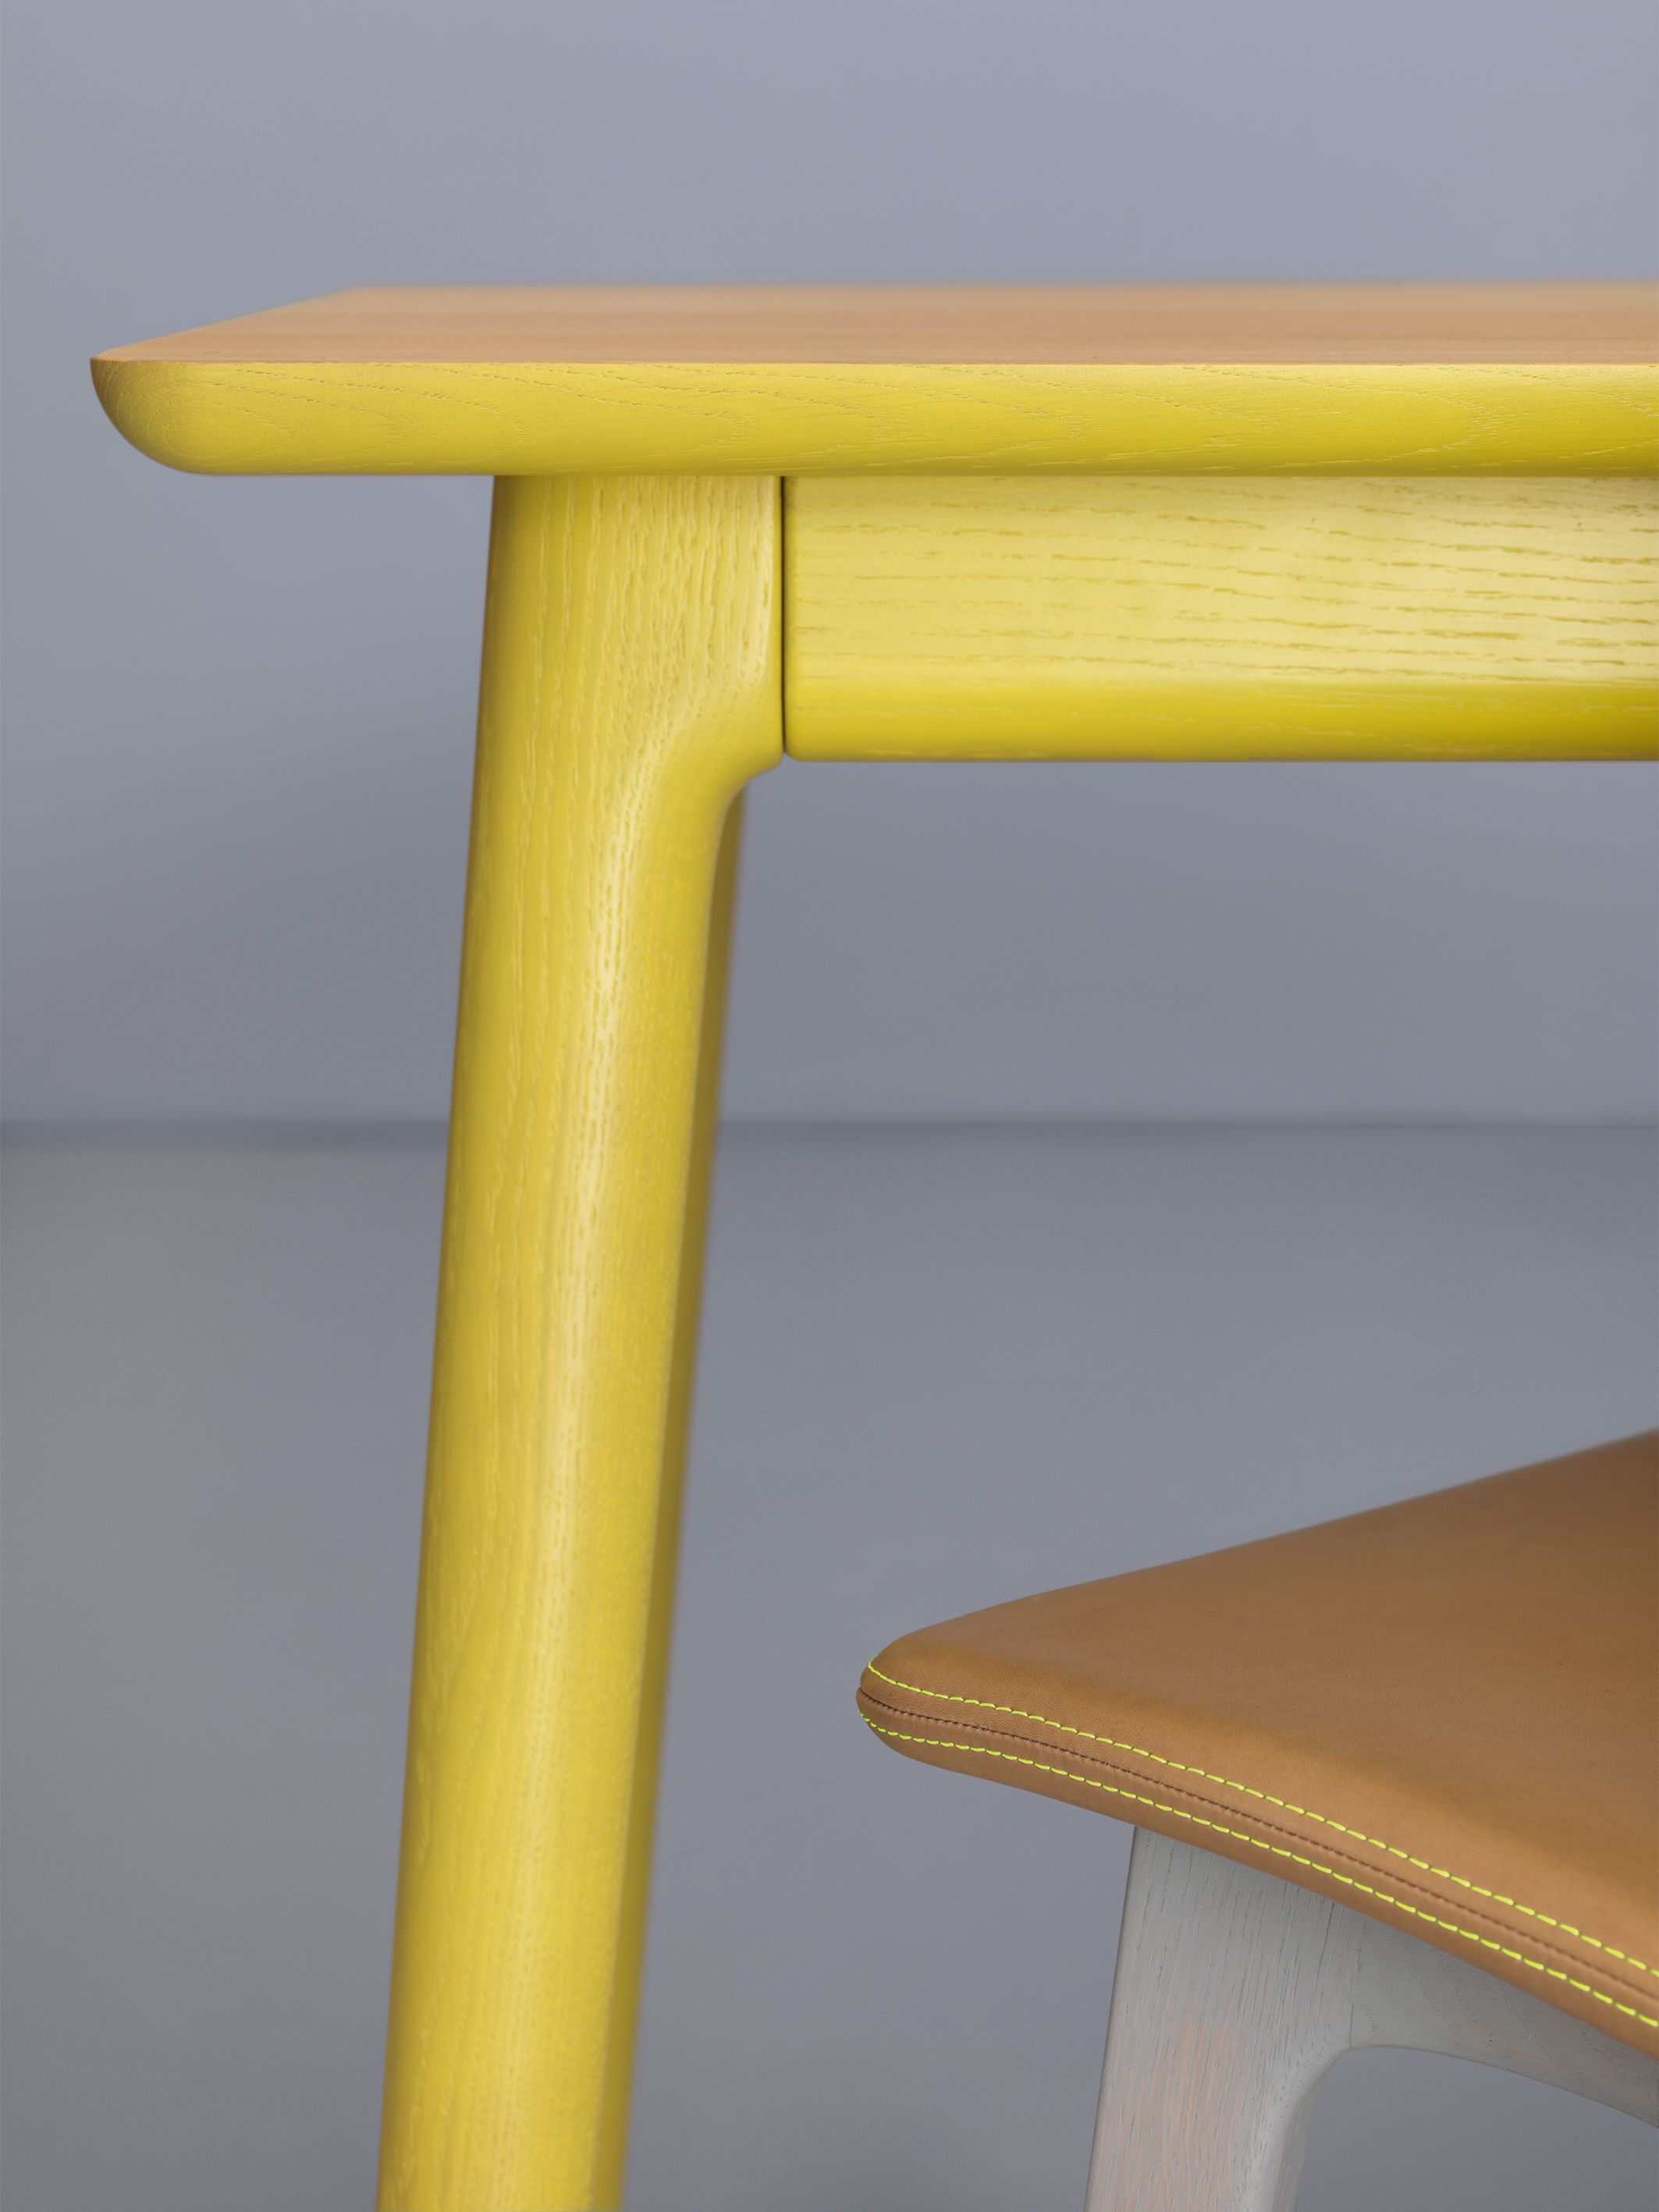 New for 2014! E8 Longue extending table by Mathias Hahn for Zeitraum